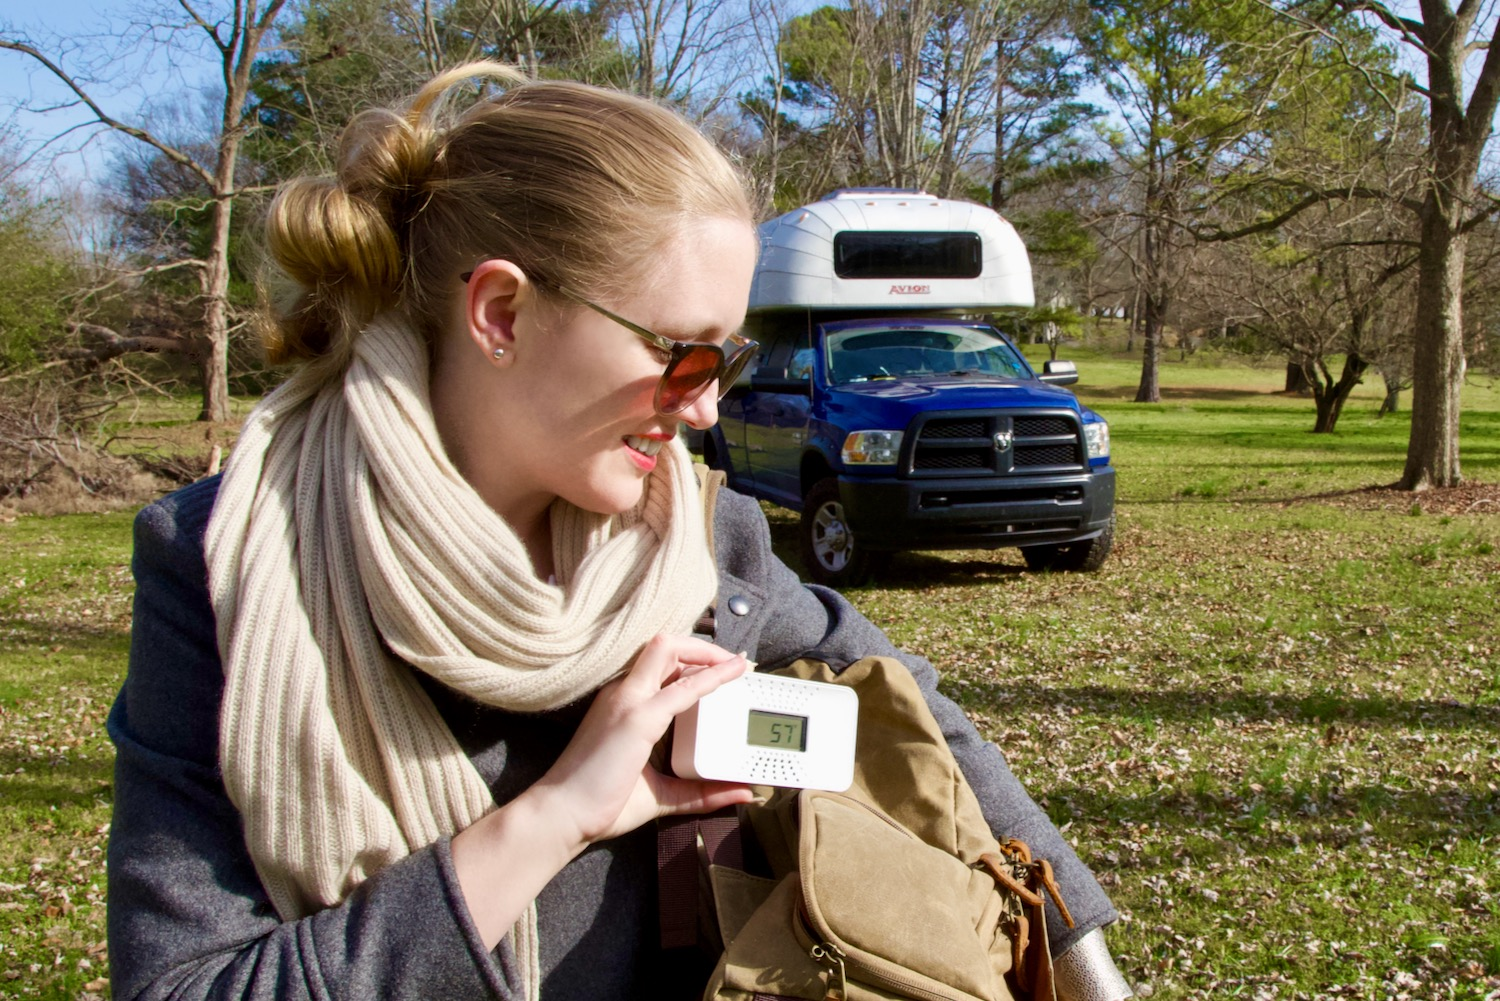 The compact size of First Alert's portable tabletop CO alarm is easy to take anywhere.